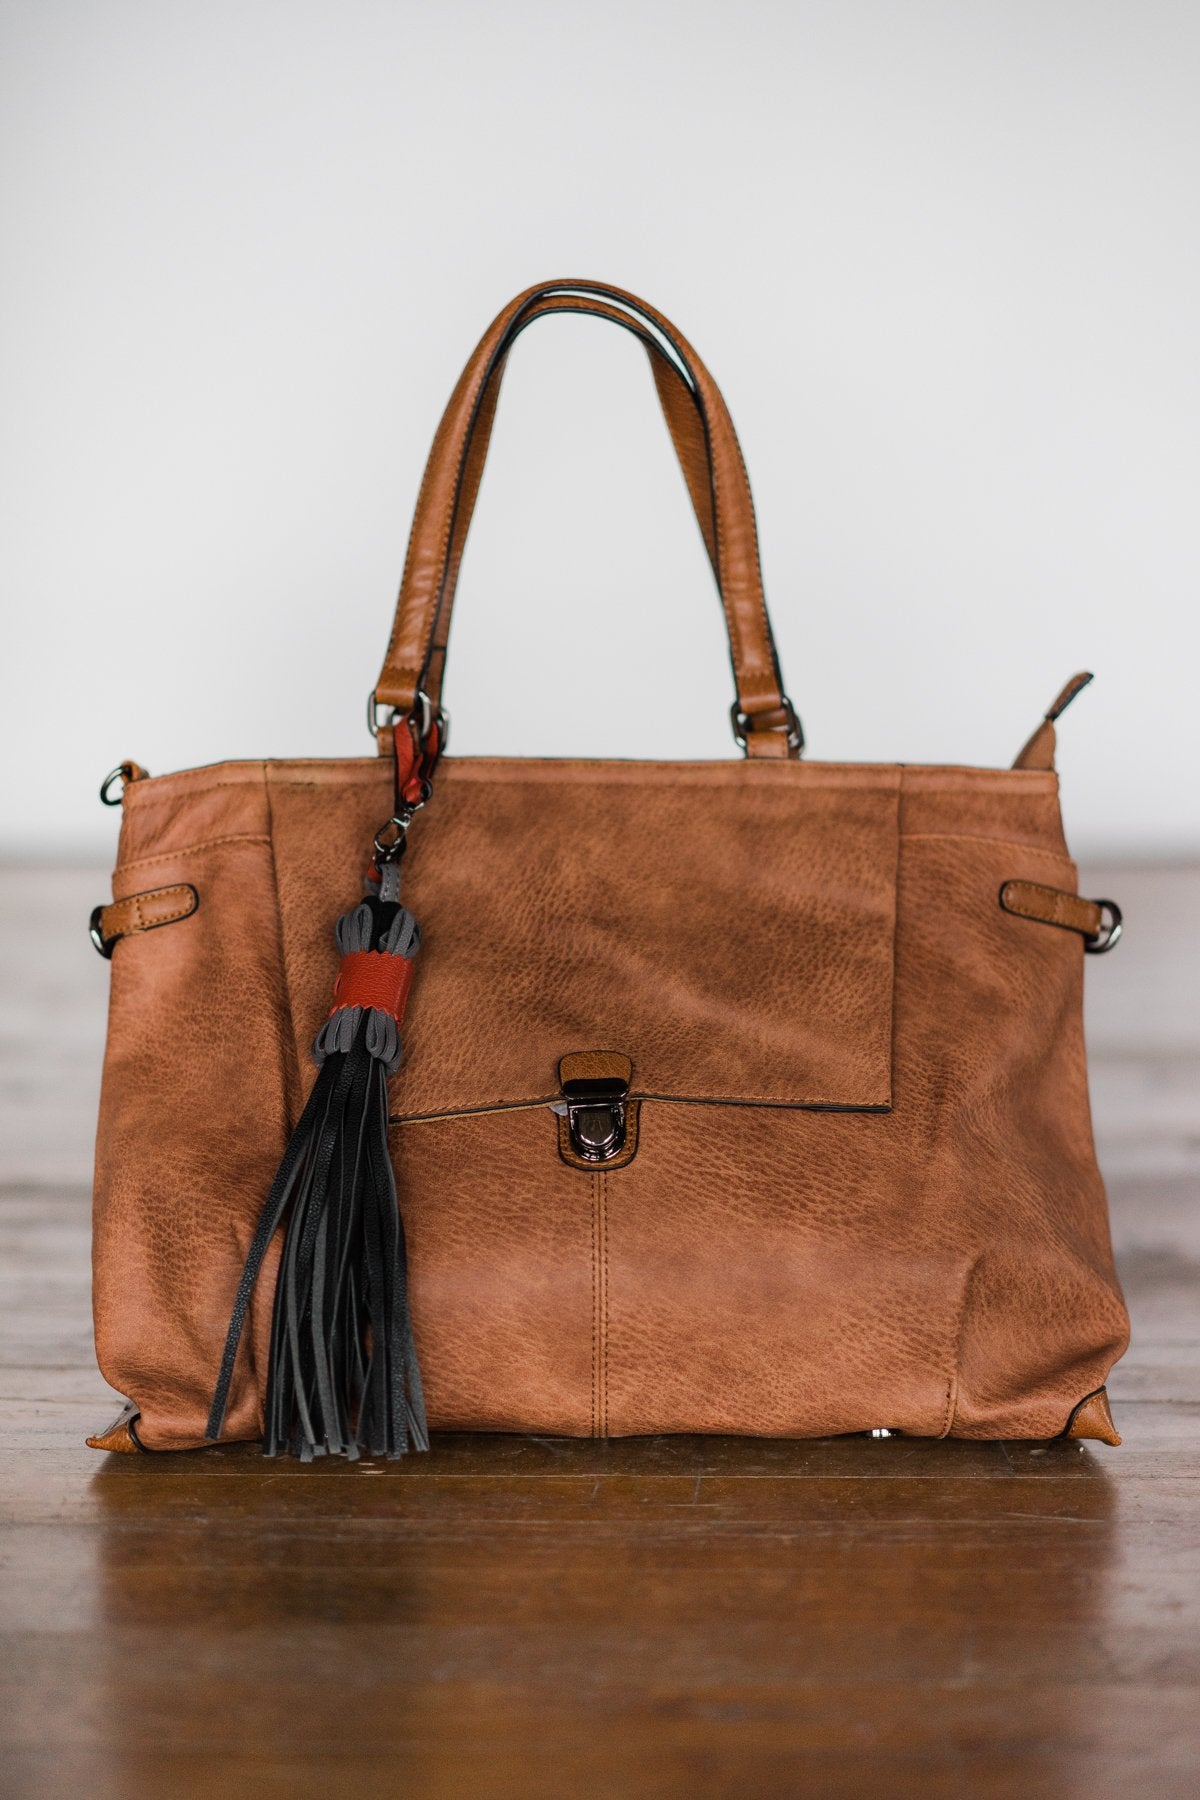 Hauls My Life Tote - Brown